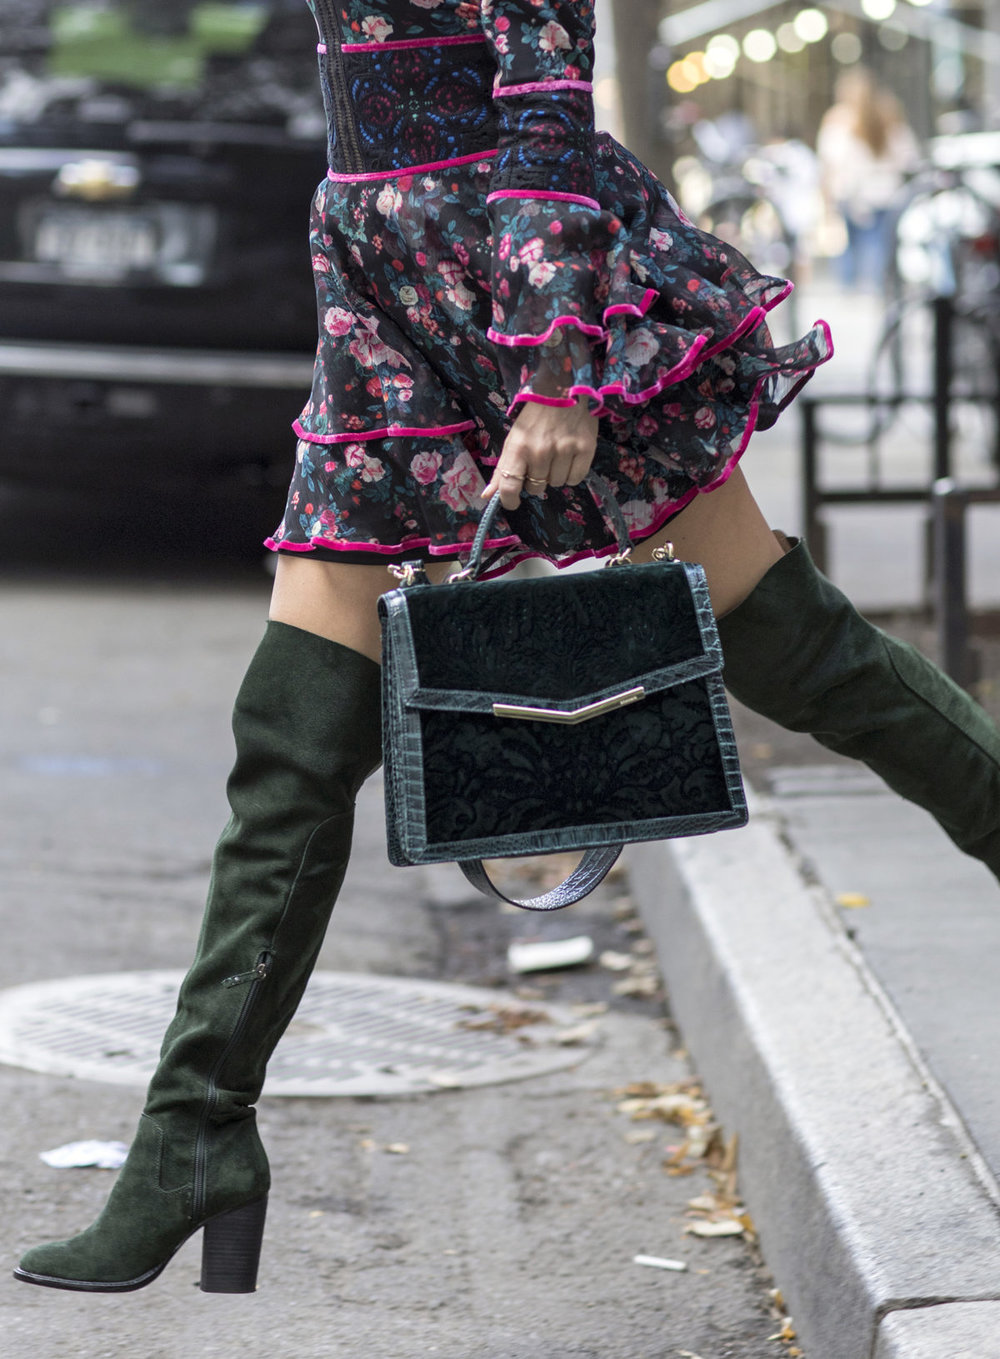 Sydne-Style-shows-the-best-accessories-at-new-york-fashion-week-in-over-the-knee-boots-1200x1631.jpg